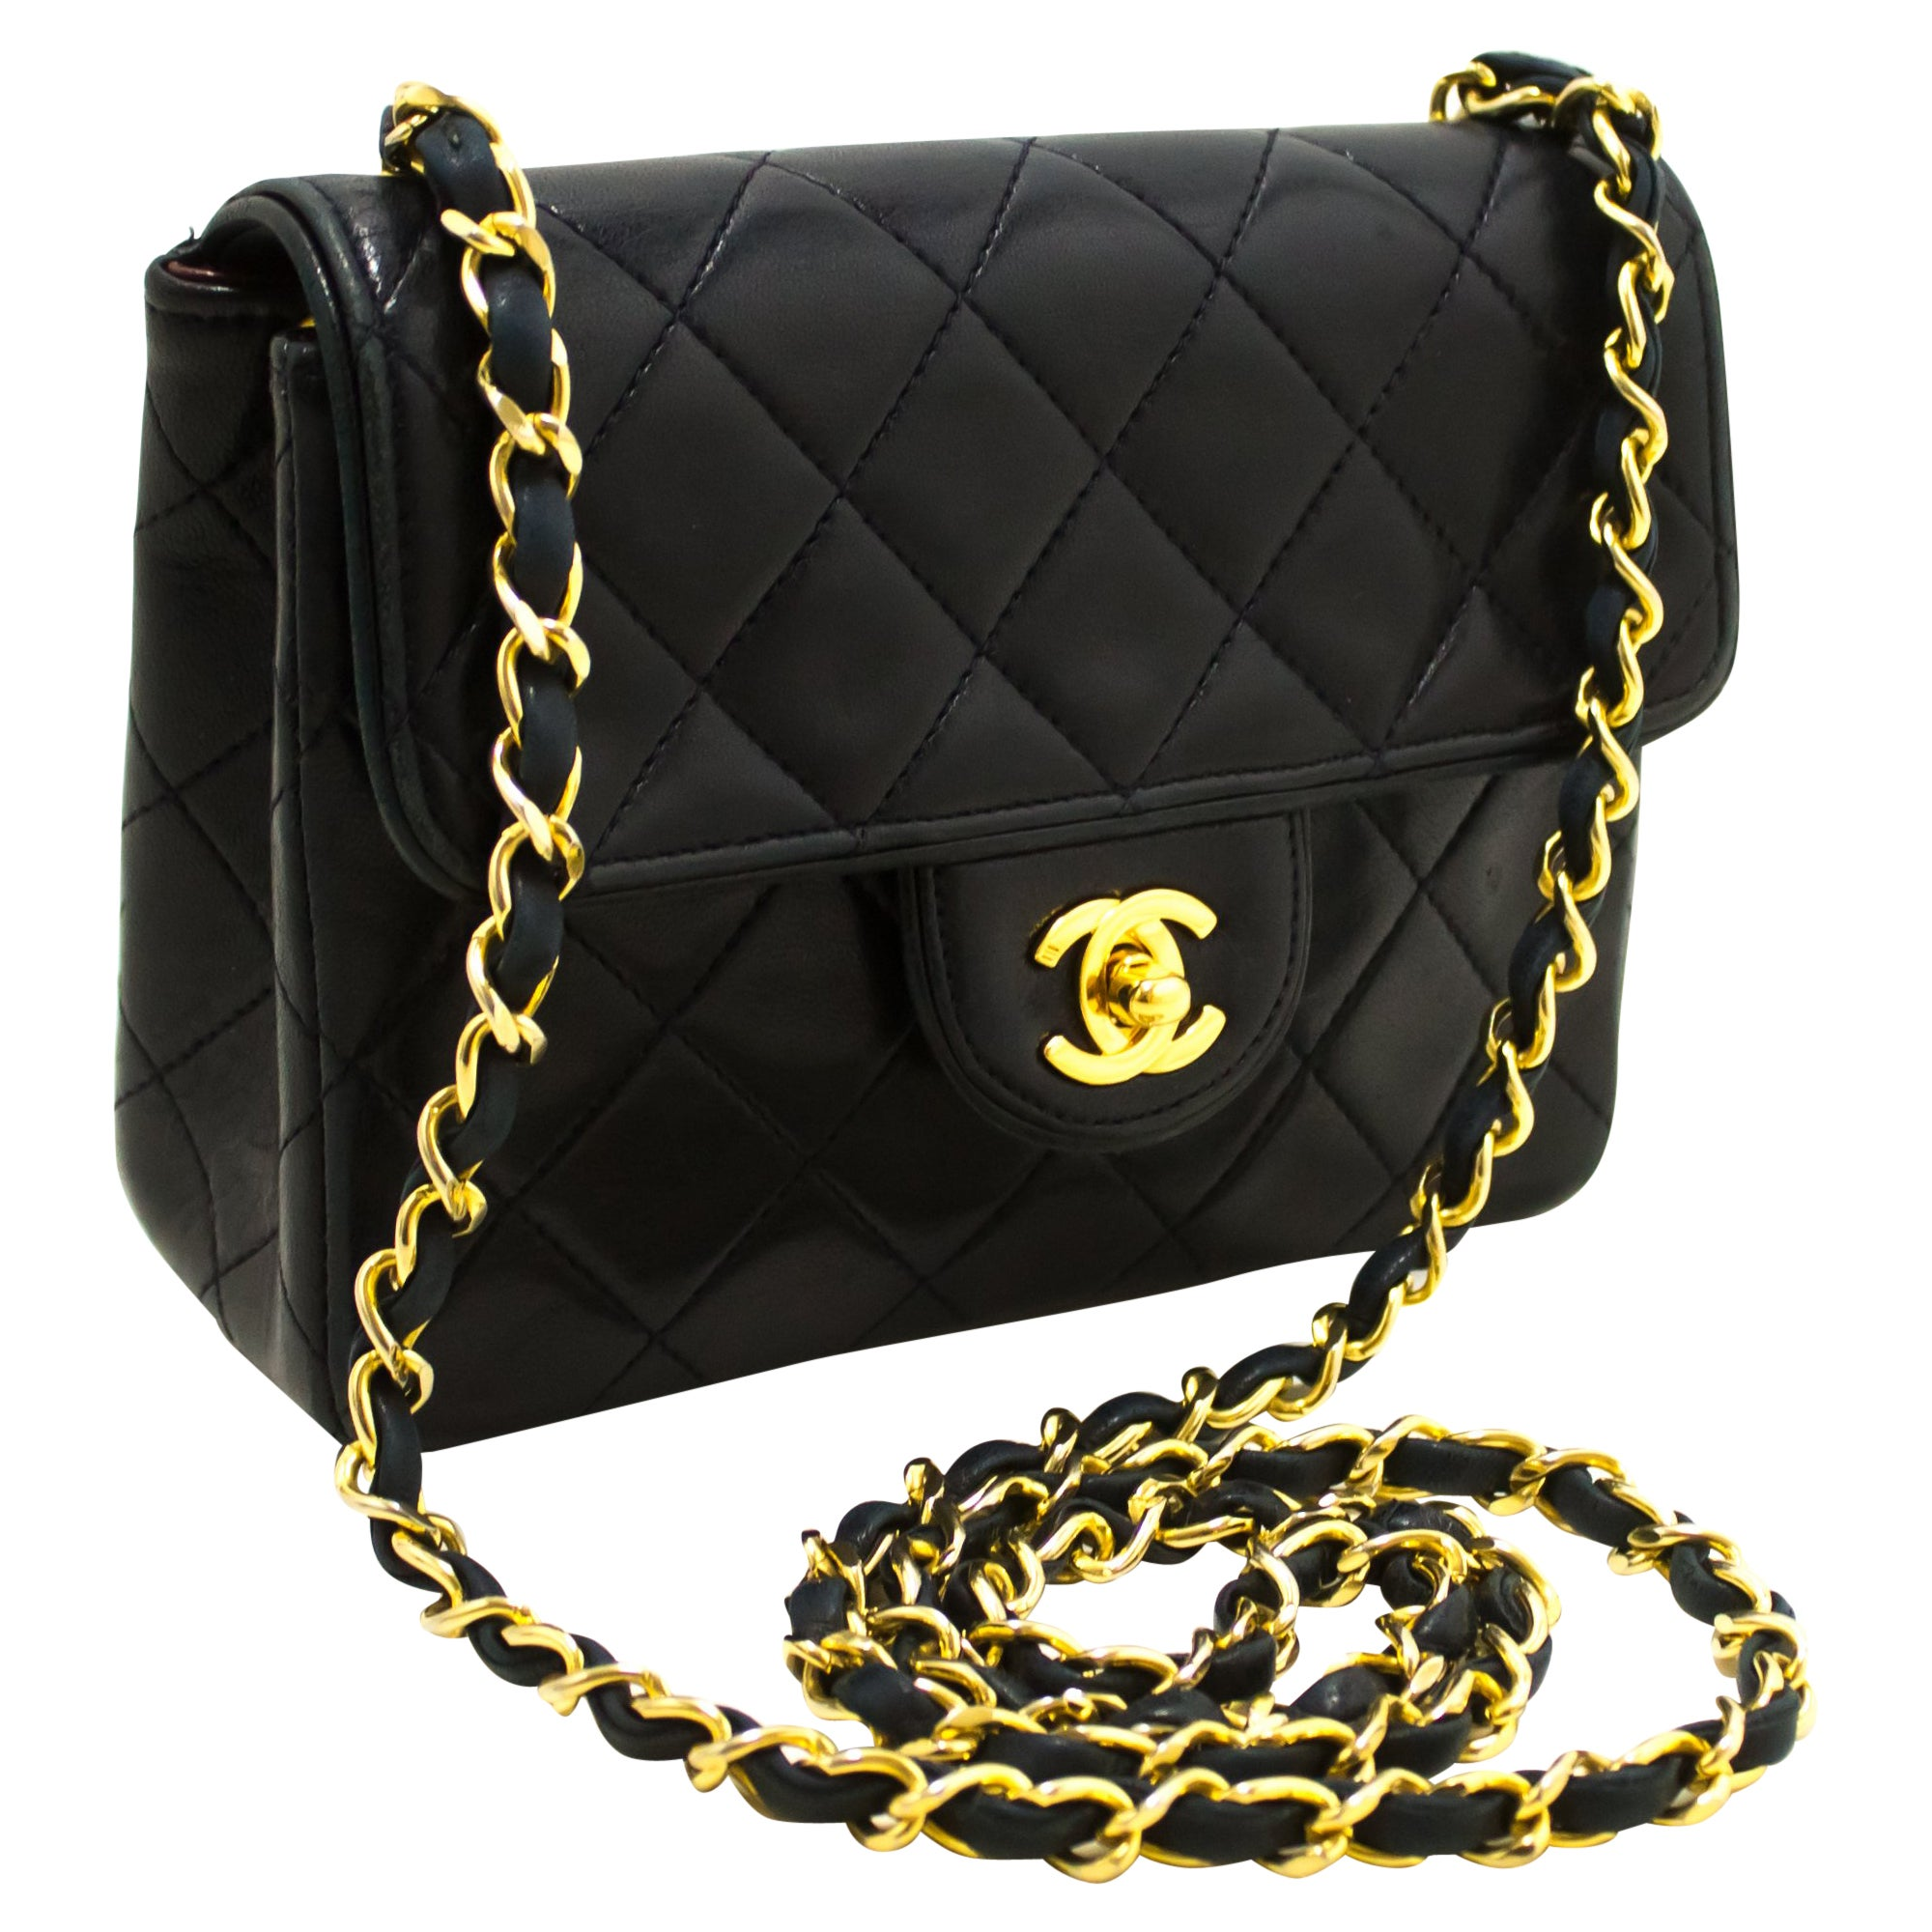 4f6eaa2882dbb2 CHANEL Navy Mini Square Small Chain Shoulder Crossbody Bag Purse For Sale  at 1stdibs